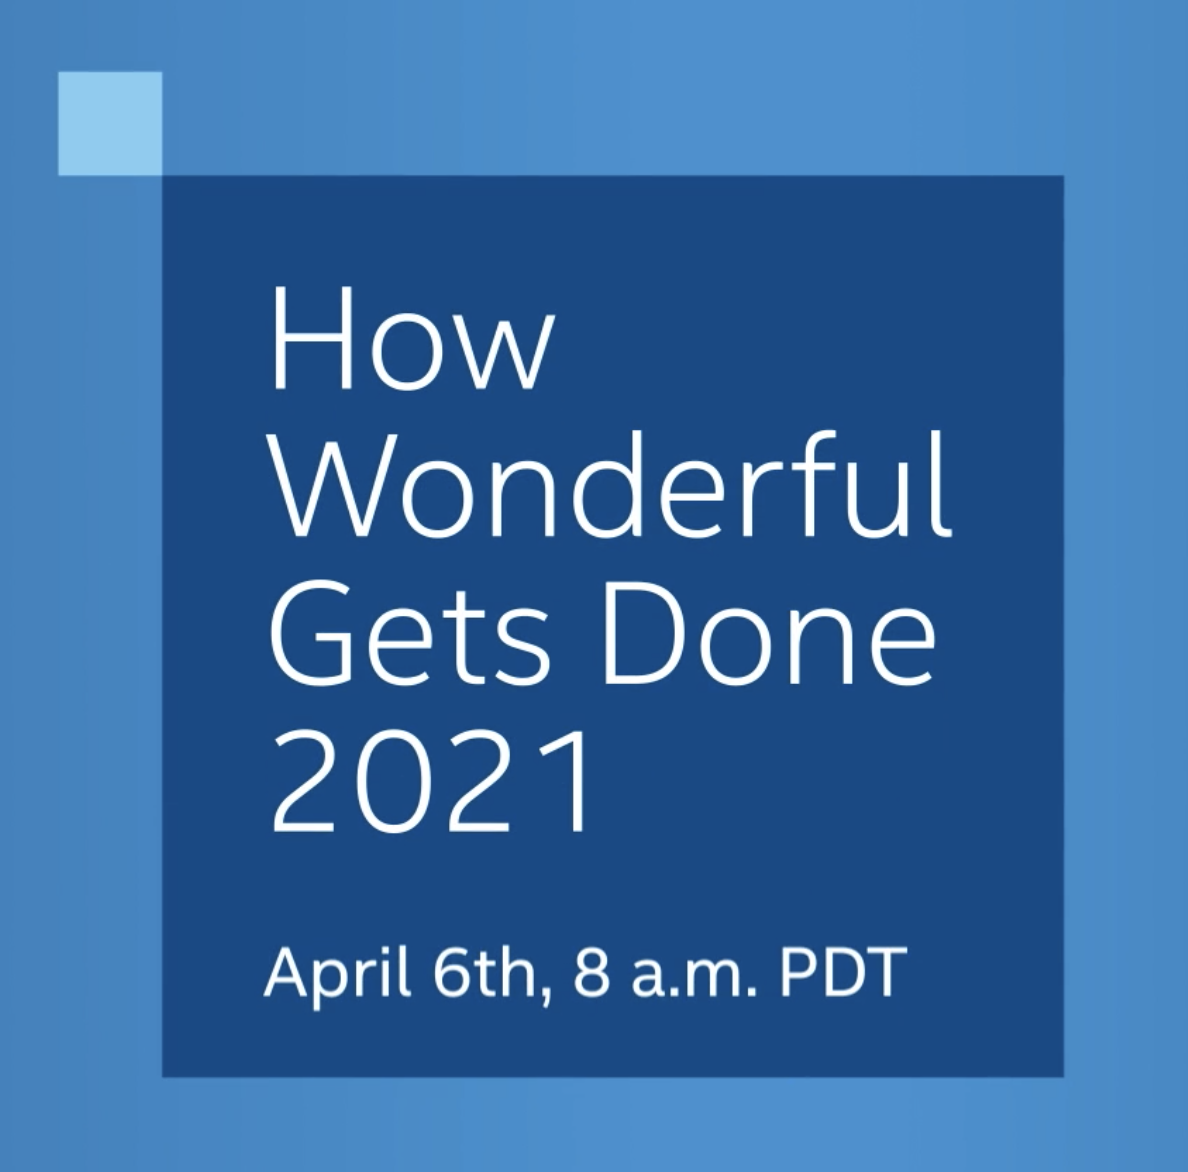 How Wonderful Gets Done 2021, April 6th, 8 a.m. PDT